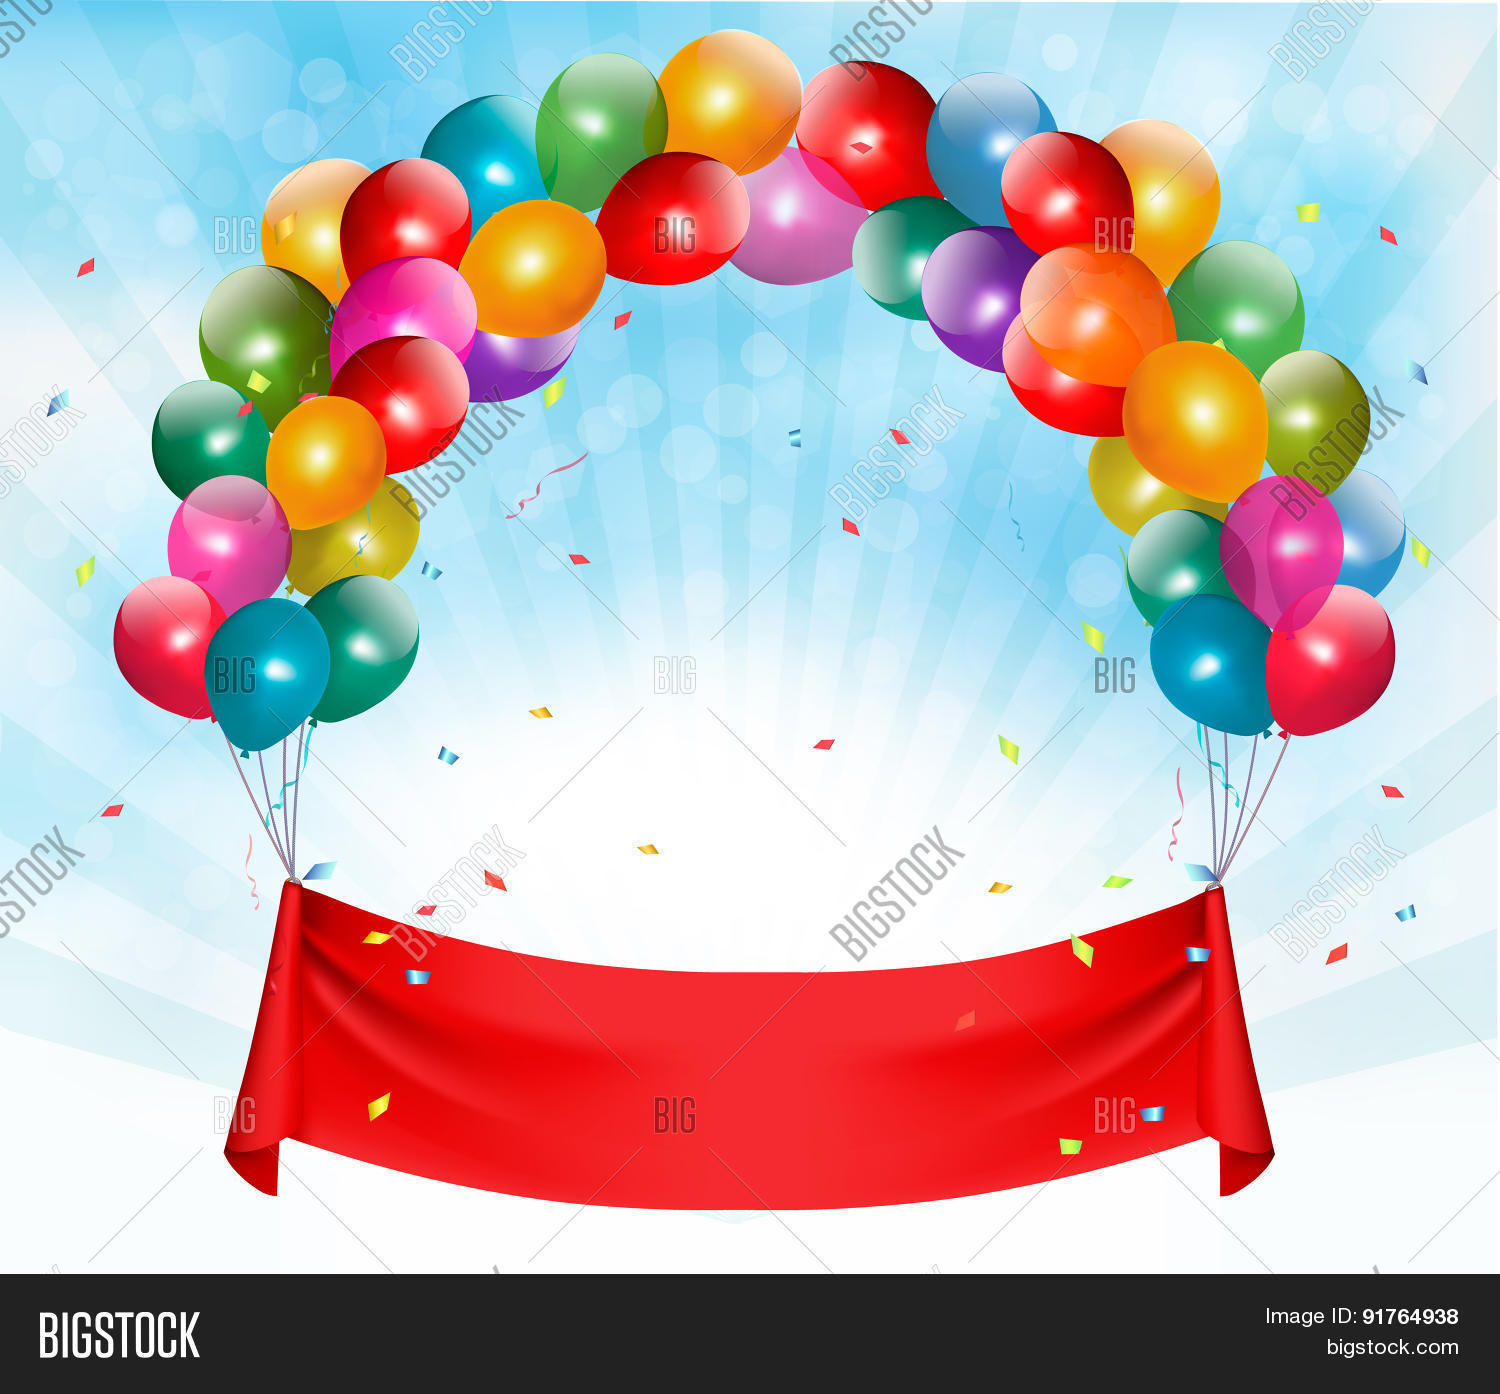 background images for birthday banner ; 91764938